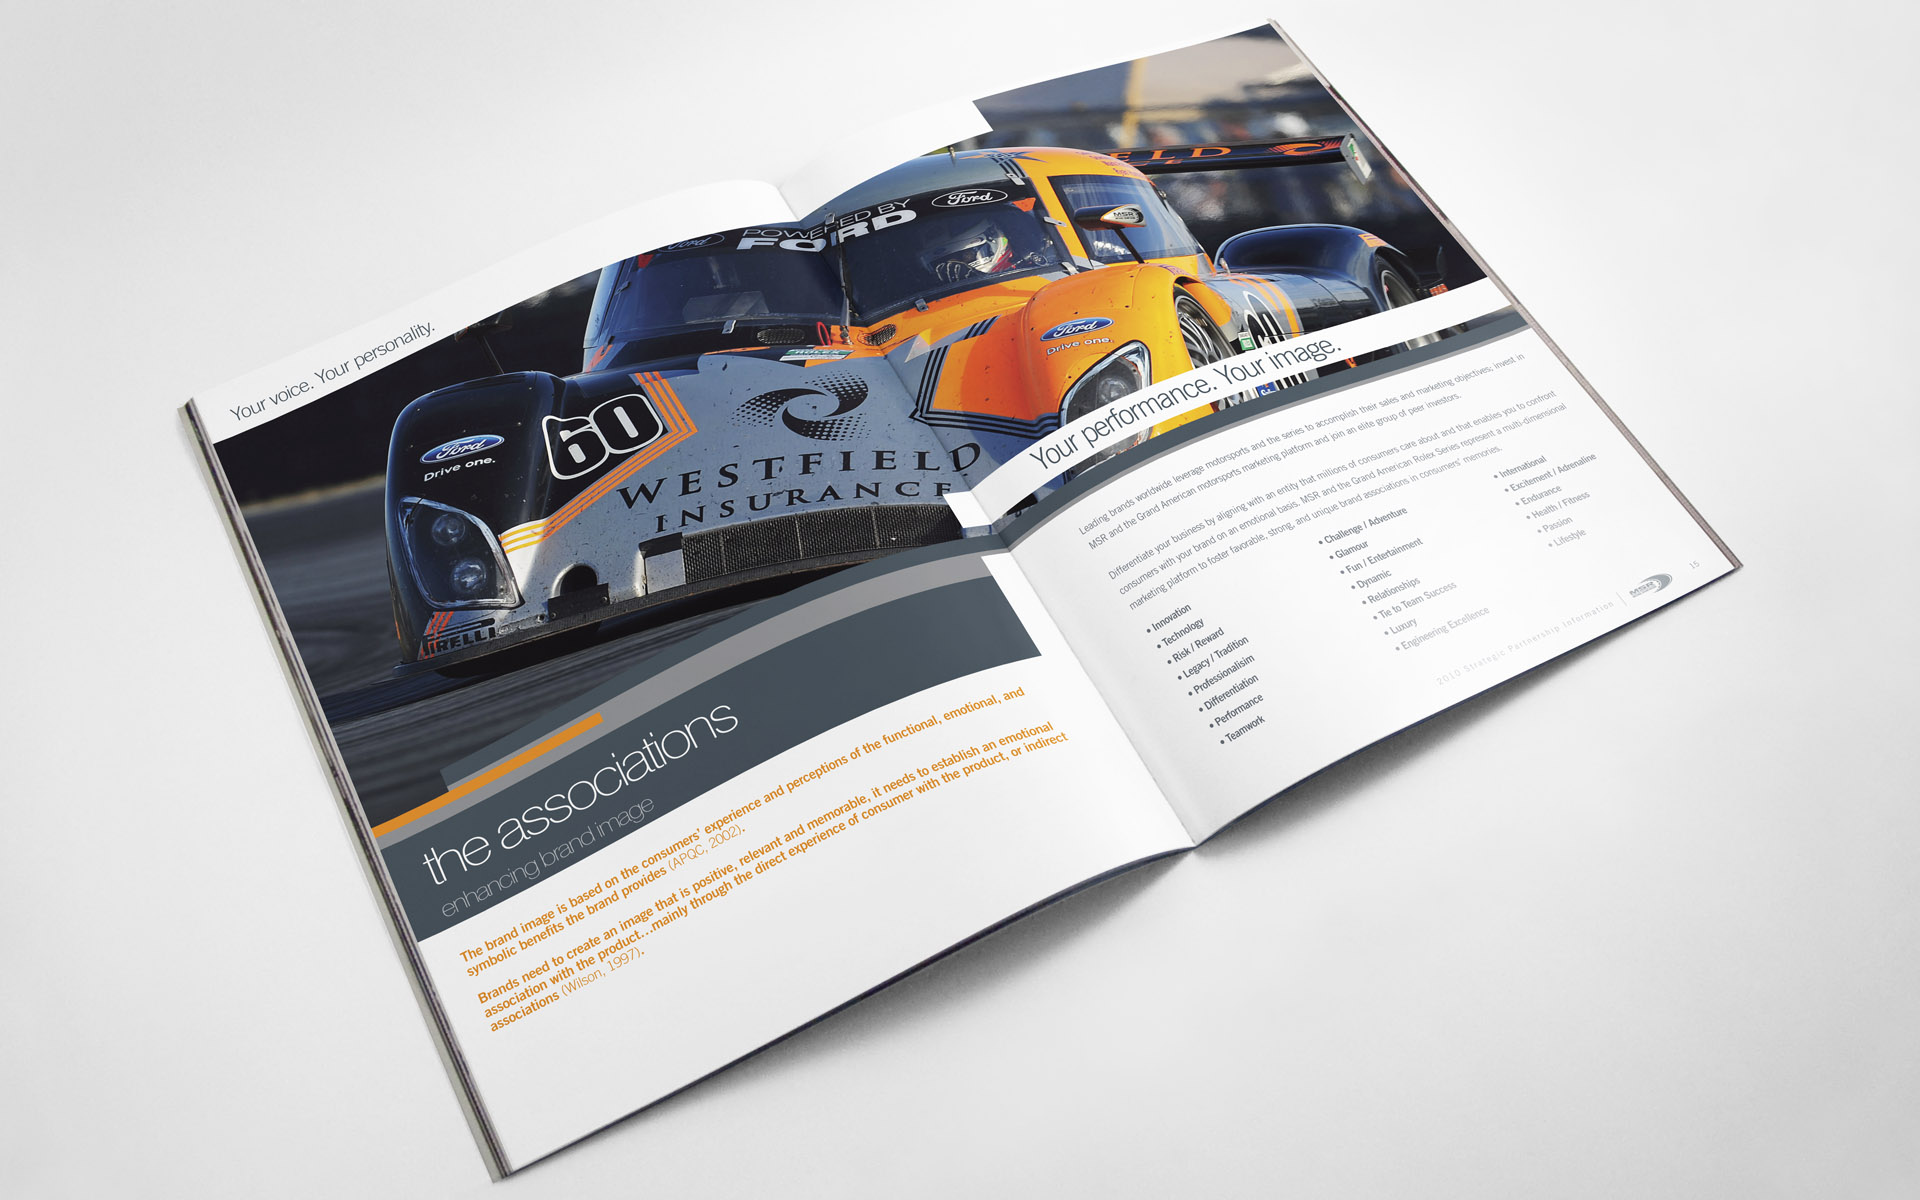 2010 Michael Shank Racing Sponsor Pitch Book